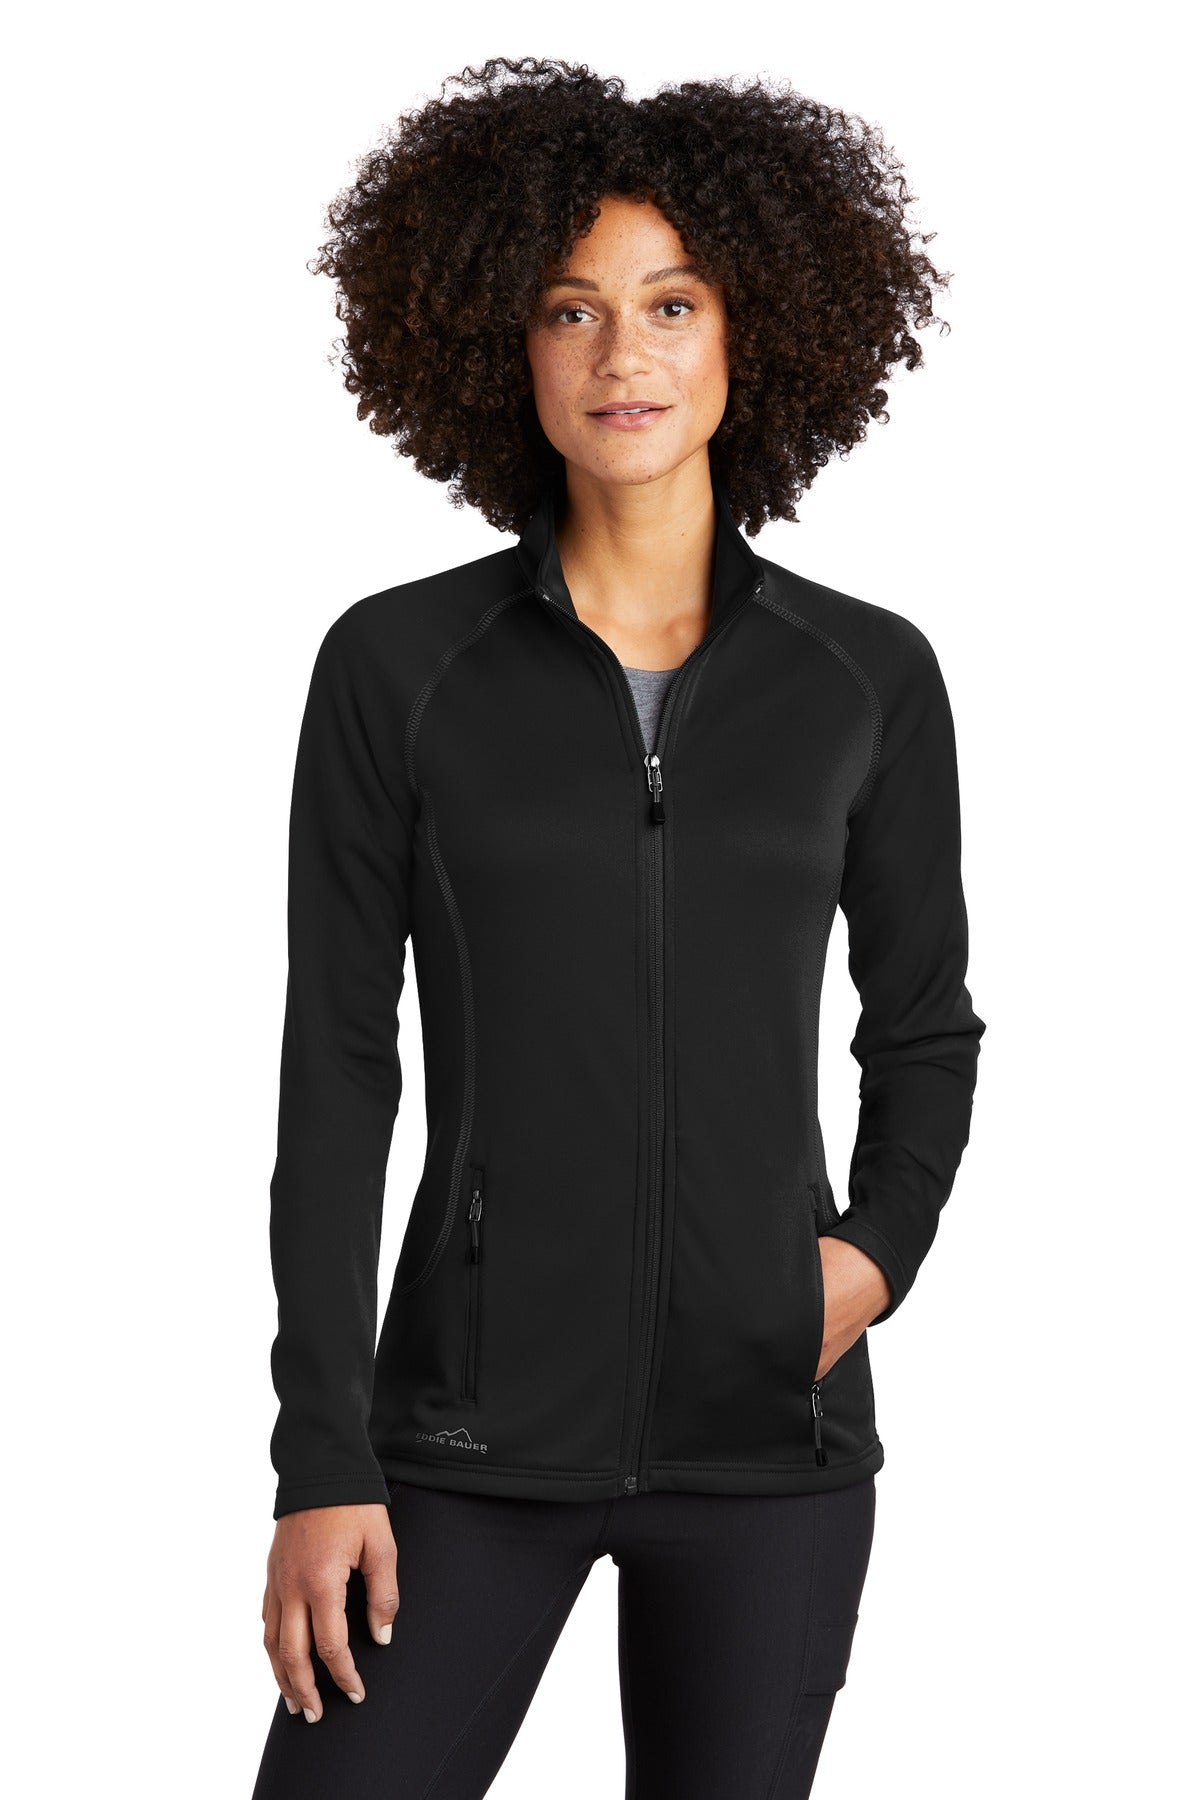 Eddie Bauer  Ladies Smooth Fleece Base Layer Full-Zip. EB247